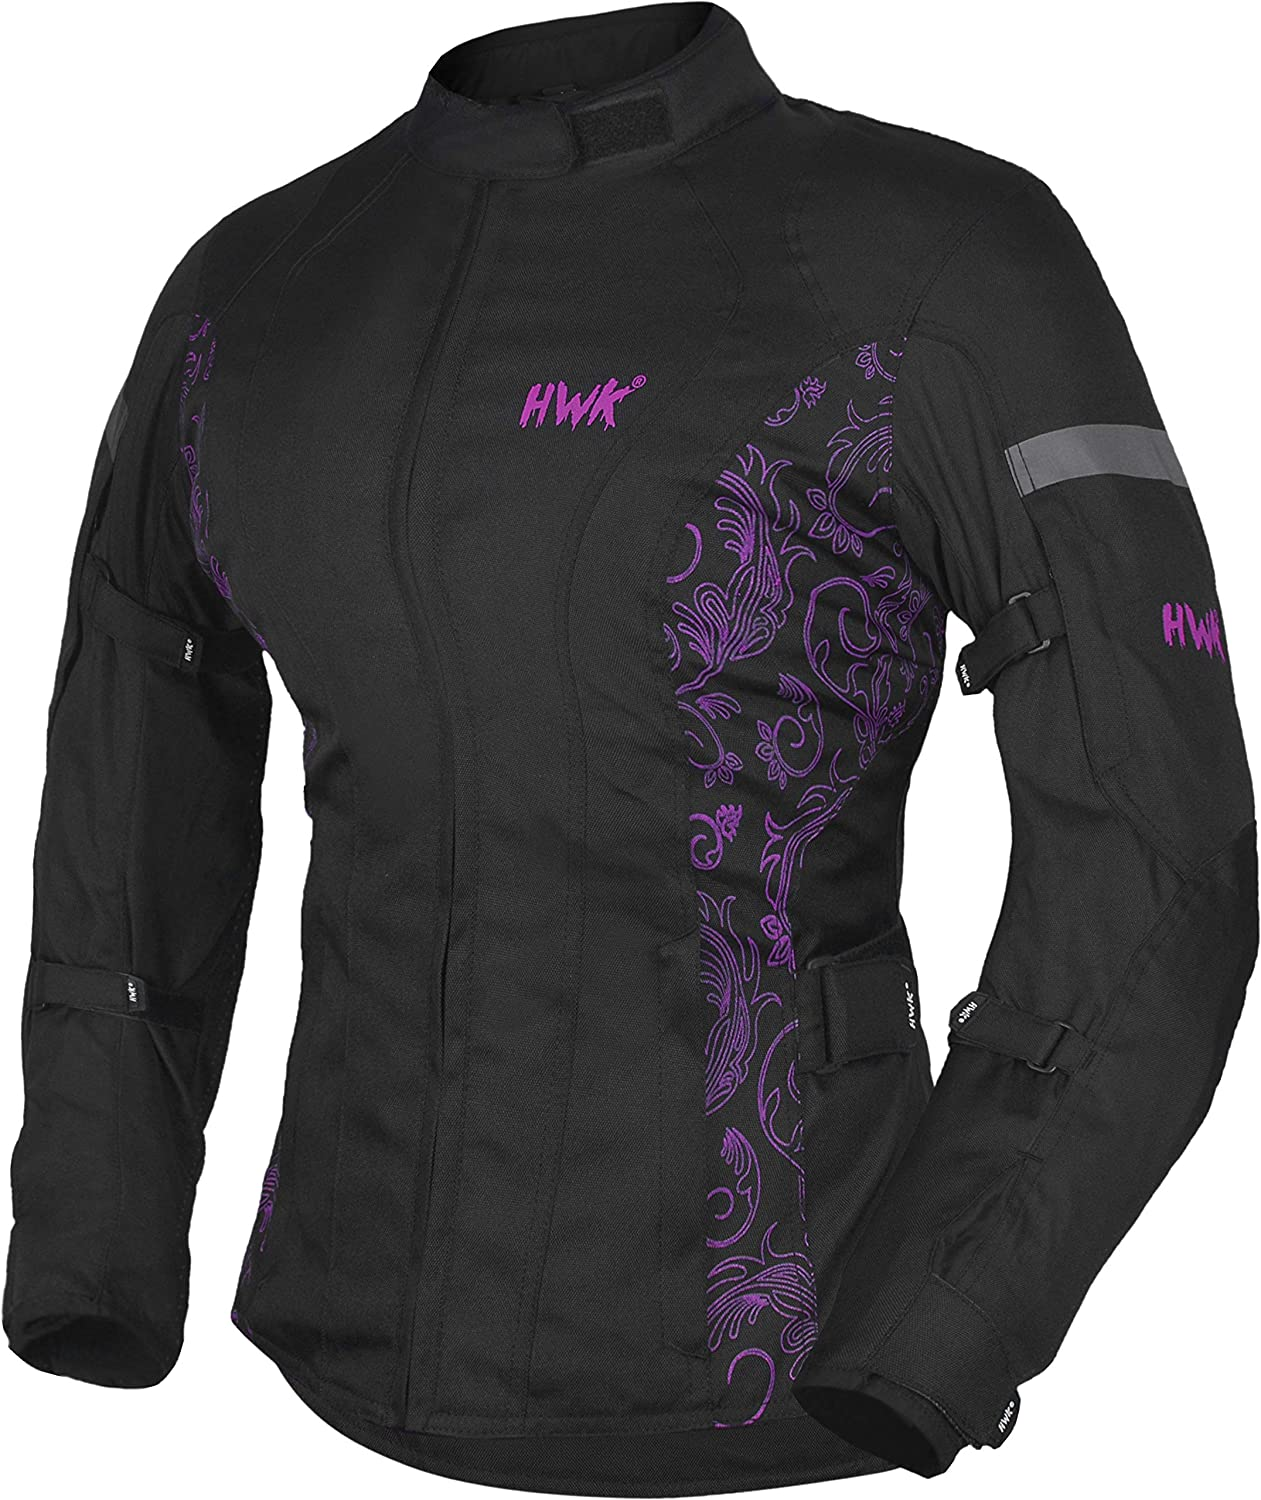 HWK Women's Motorcycle Jacket For Women Rain Waterproof Moto Riding Ladies Motorbike Jackets CE Armored (Black/Pink, XX-Large)